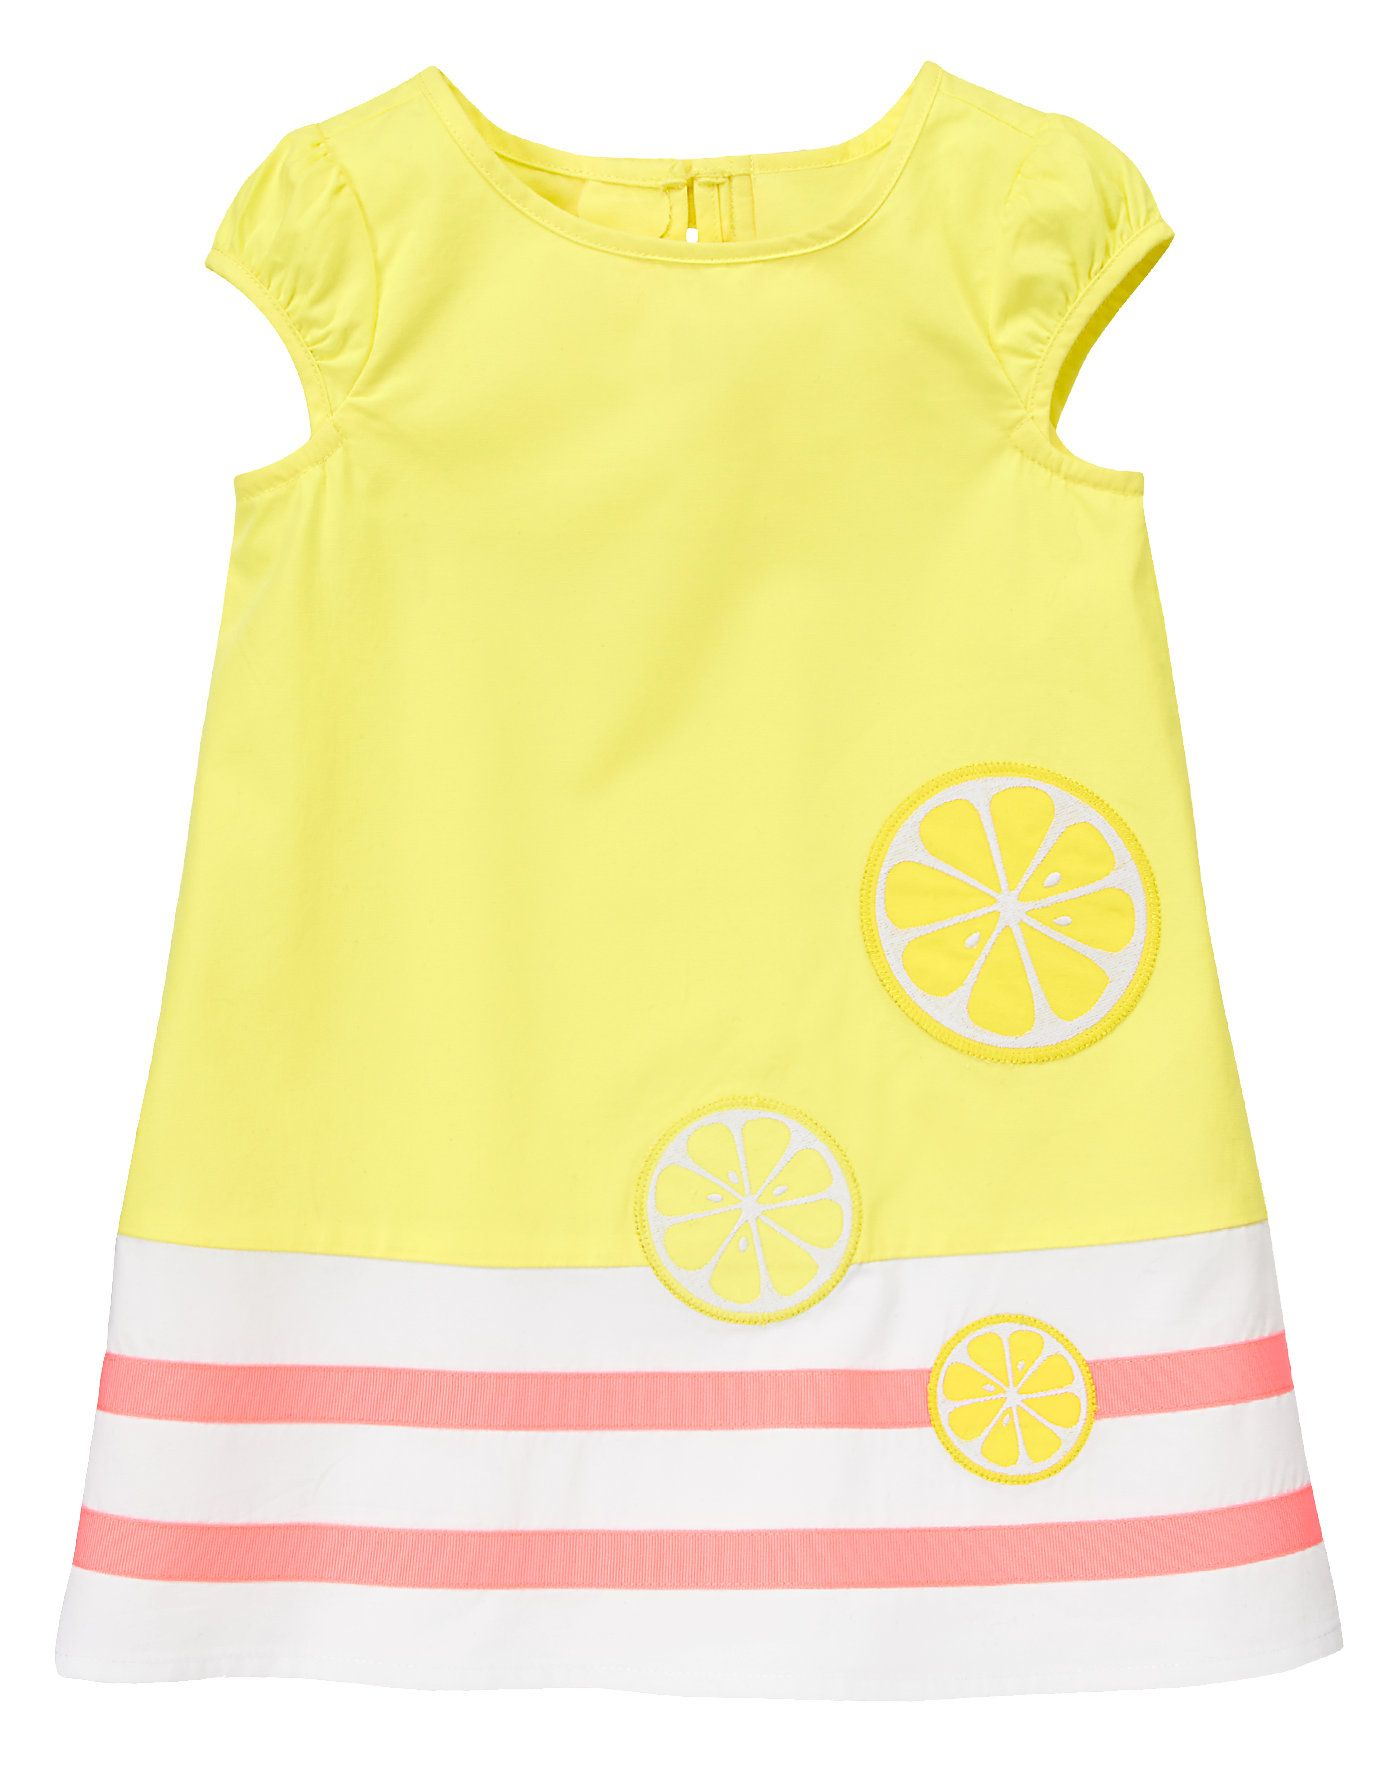 Baby girl looks refreshingly sweet in our colorblocked lemon dress